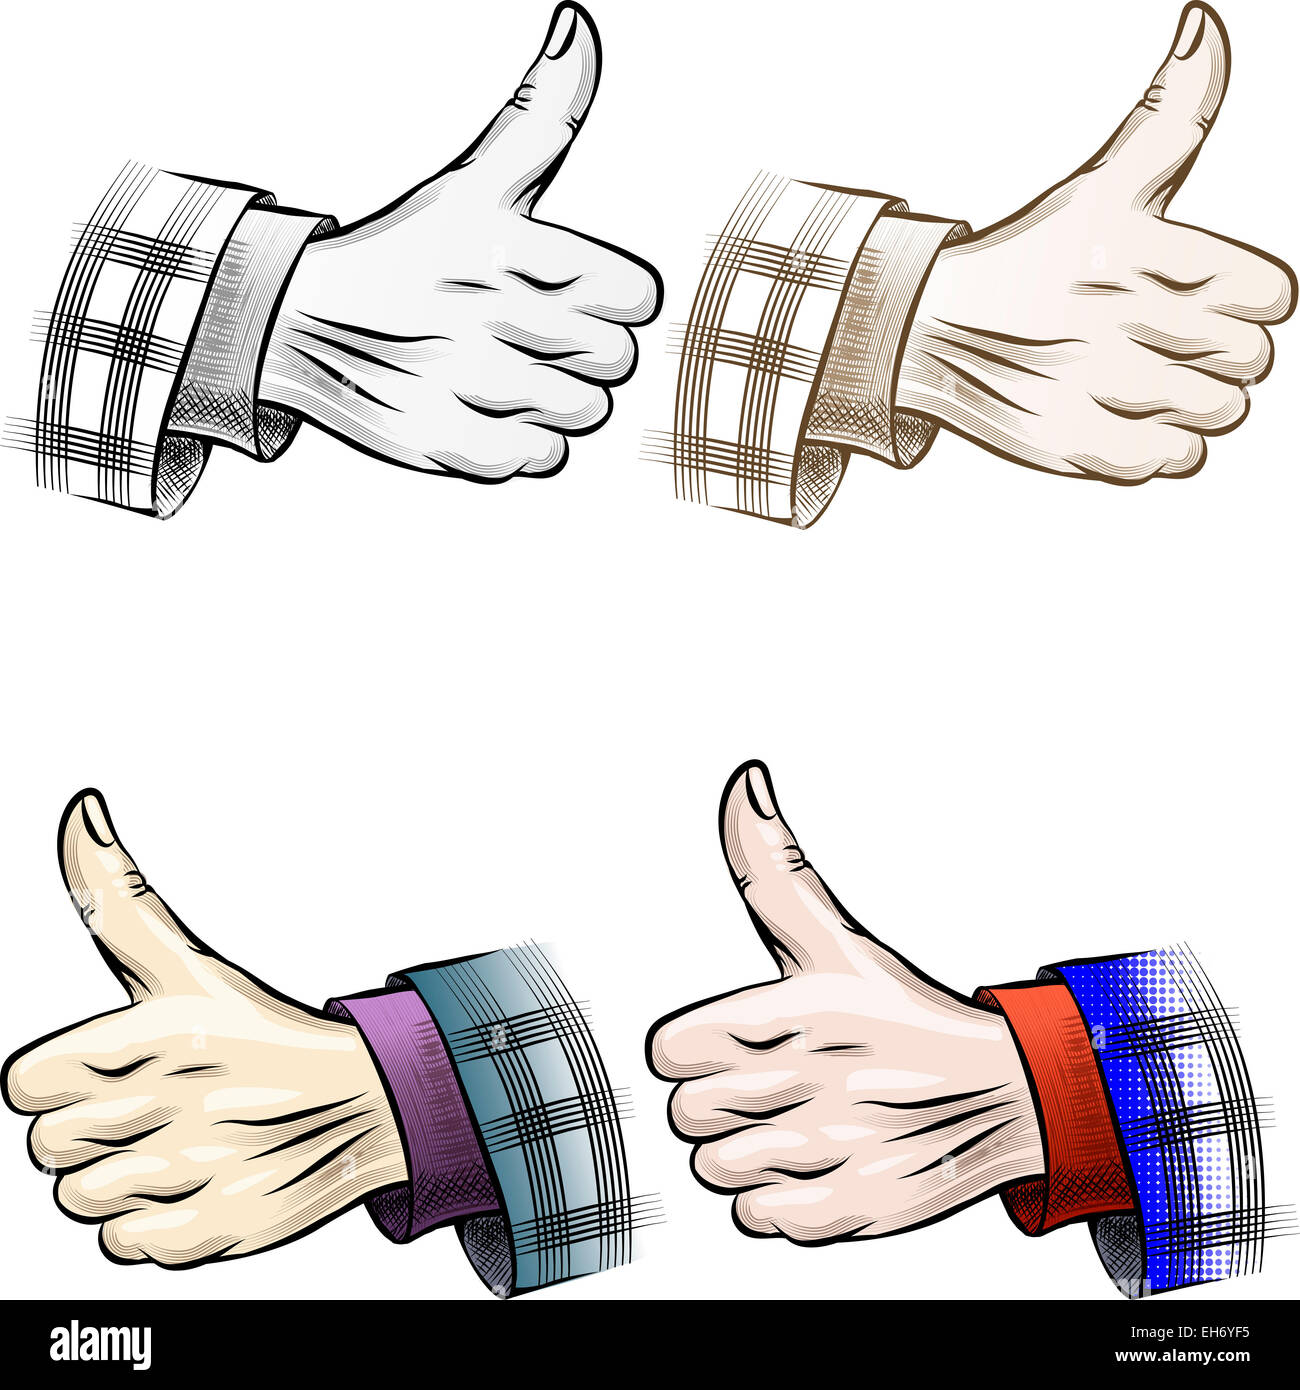 Set of vintage thumb up gesture drawn in different color variations - Stock Image